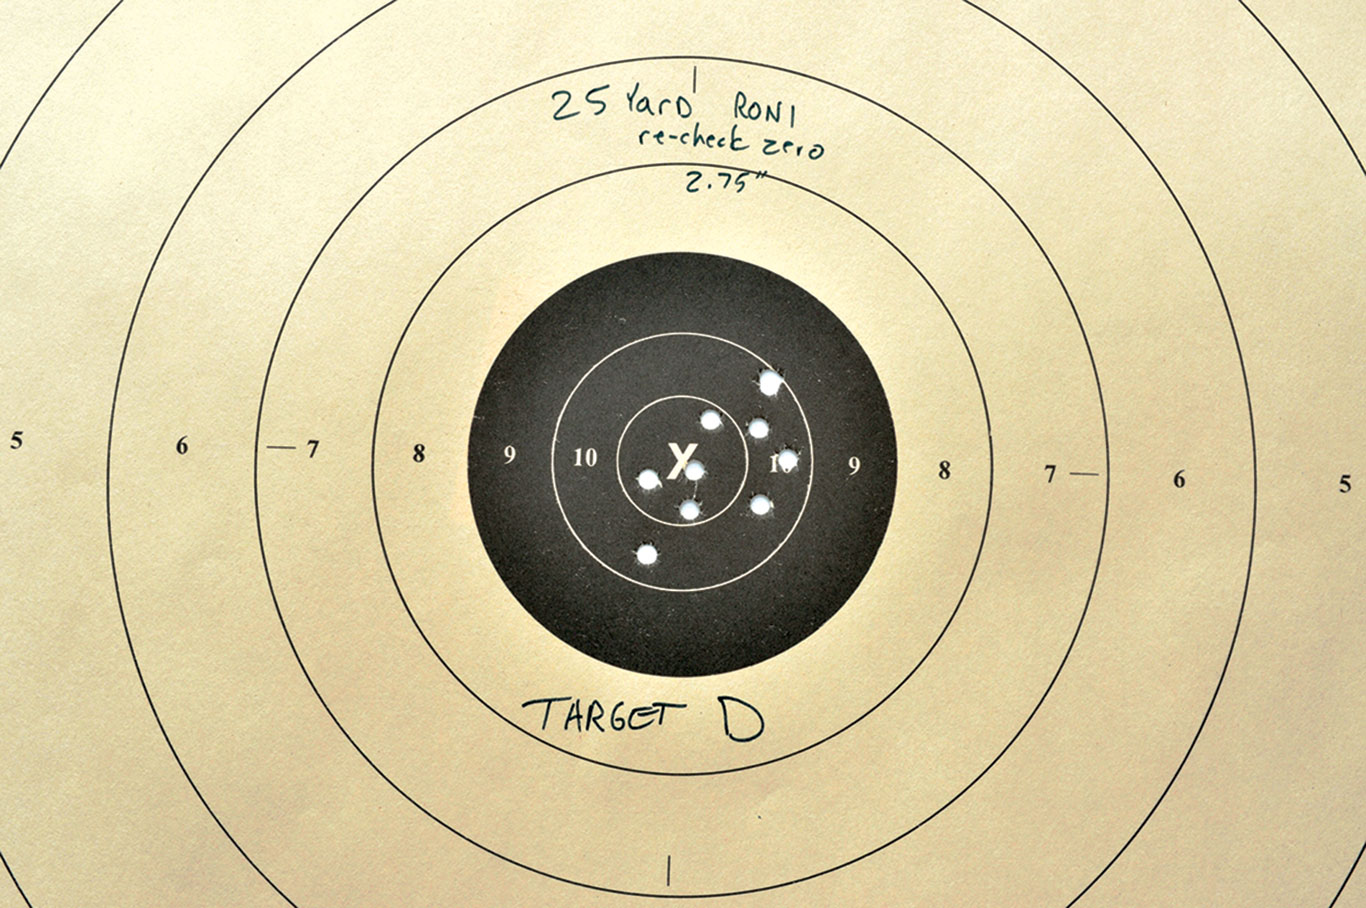 Target D: After removing and reinstalling the Glock 19 from the Micro RONI Stabilizer twice, Tarr checked the zero, and discovered it had shifted less than an inch at 25 yards.